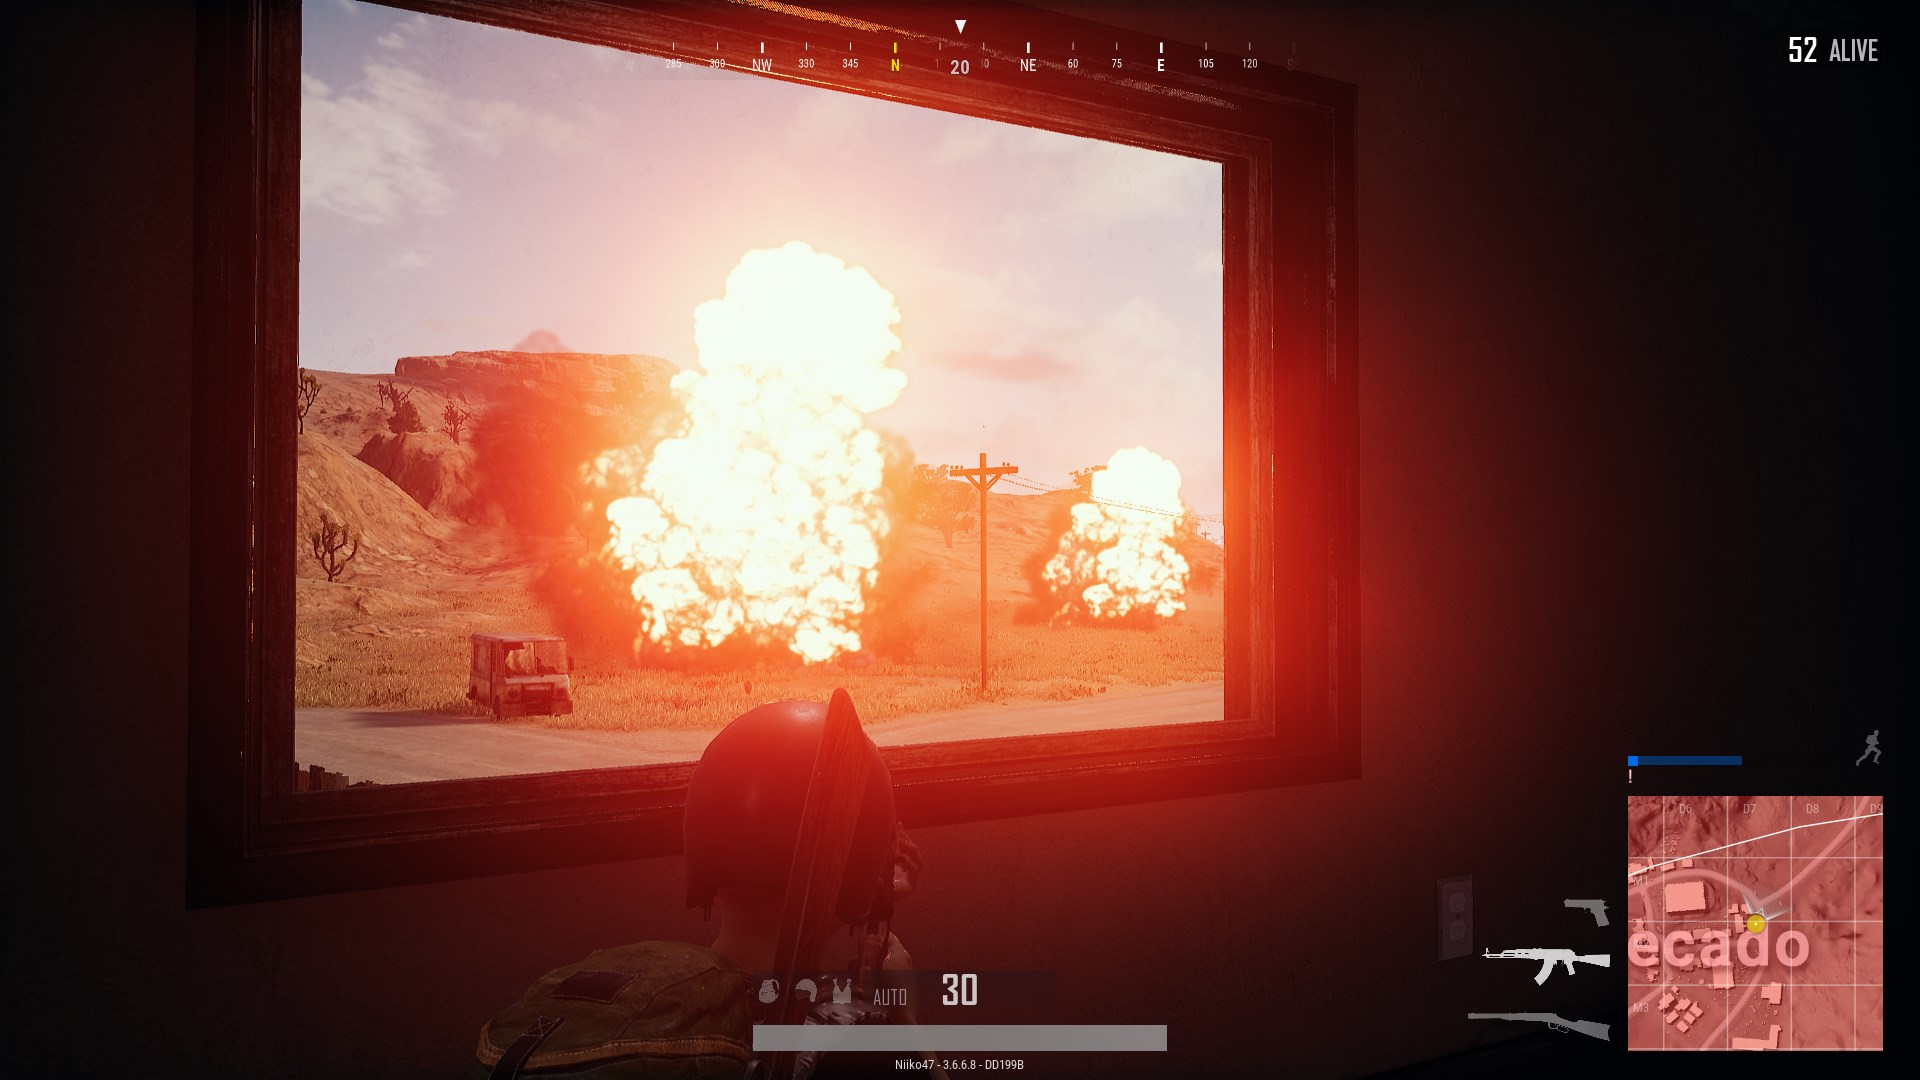 Pubg How To Earn More Battle Points Bp Every Game: PLAYERUNKNOWN'S Battlegrounds Review